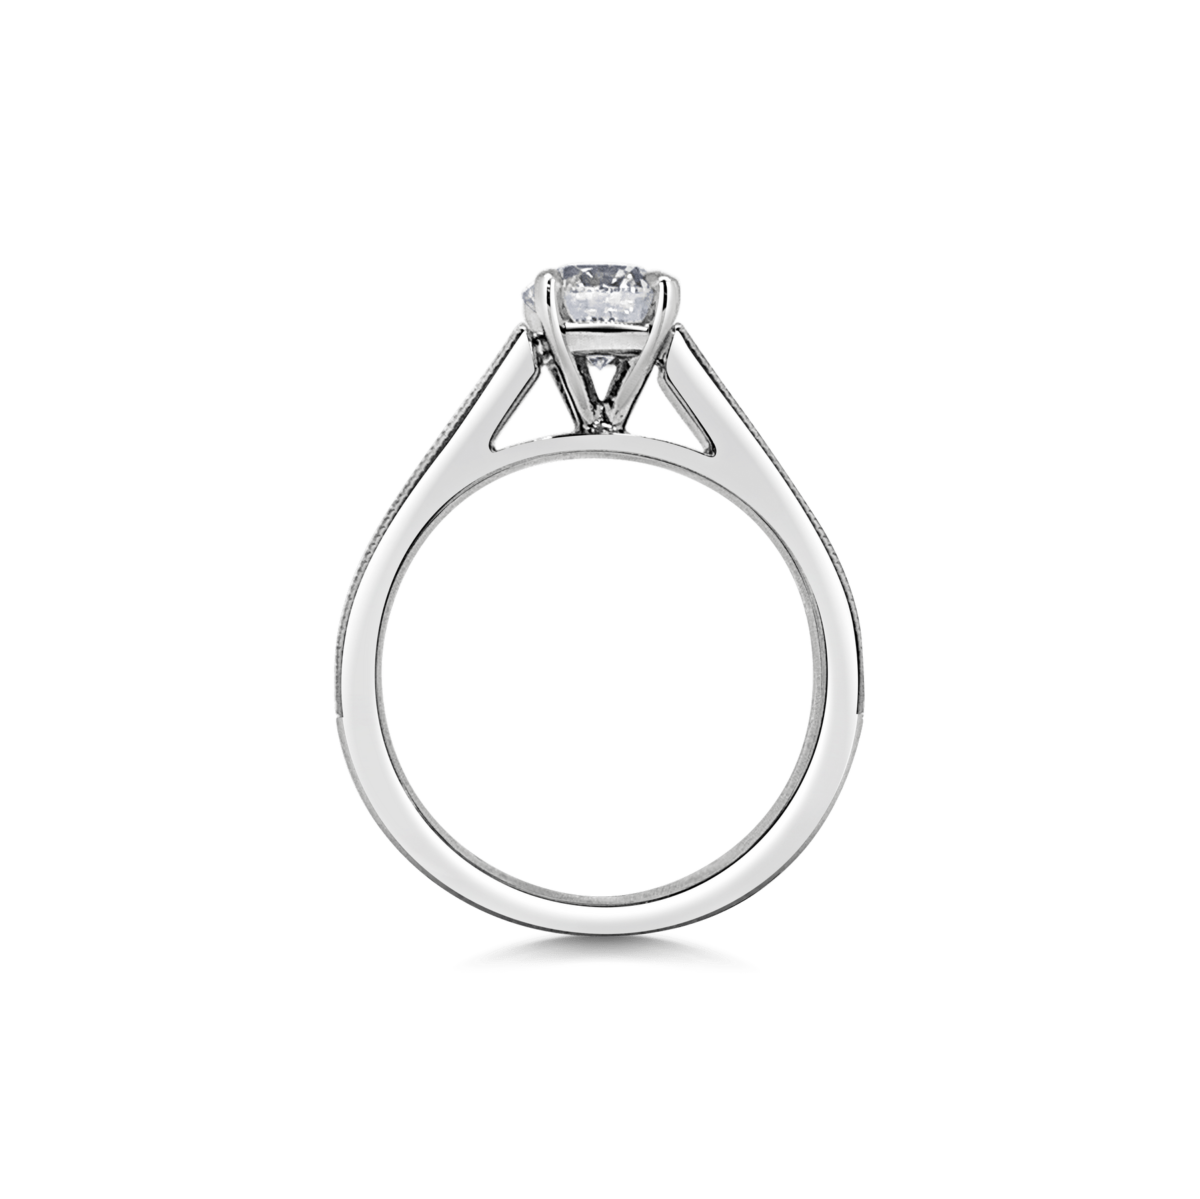 Lara Diamond Channel Set Shoulders with Double Milgrain Finish Engagement Ring Side View